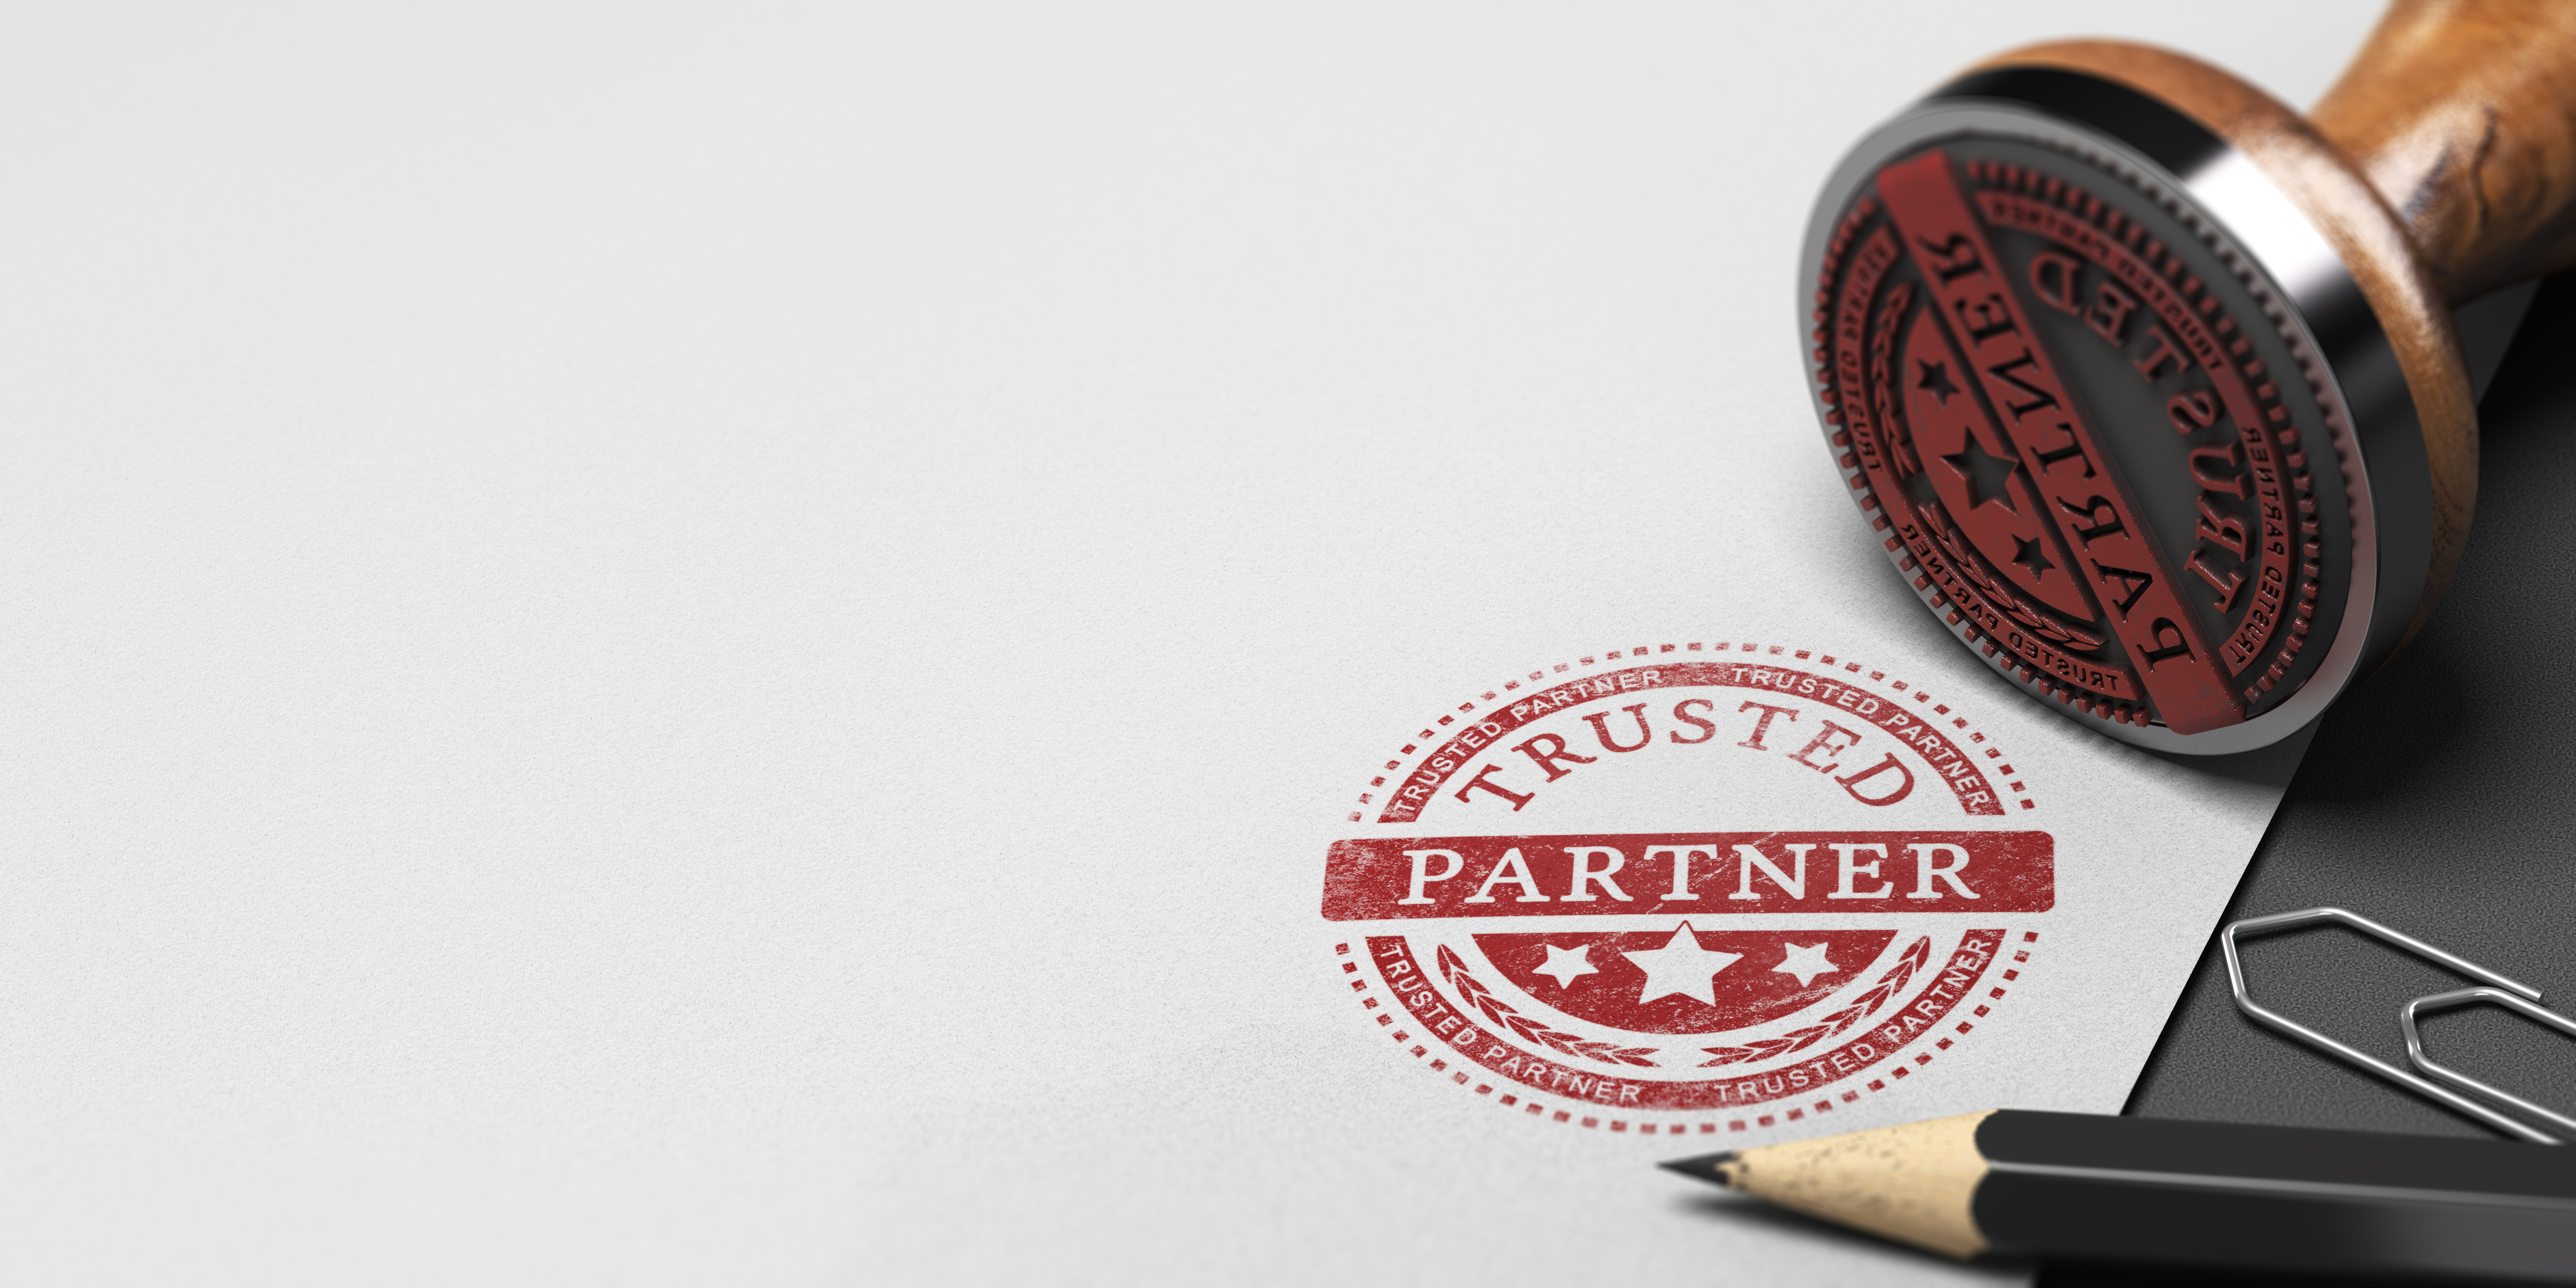 Trusted Partner, Trust in Business Partnership